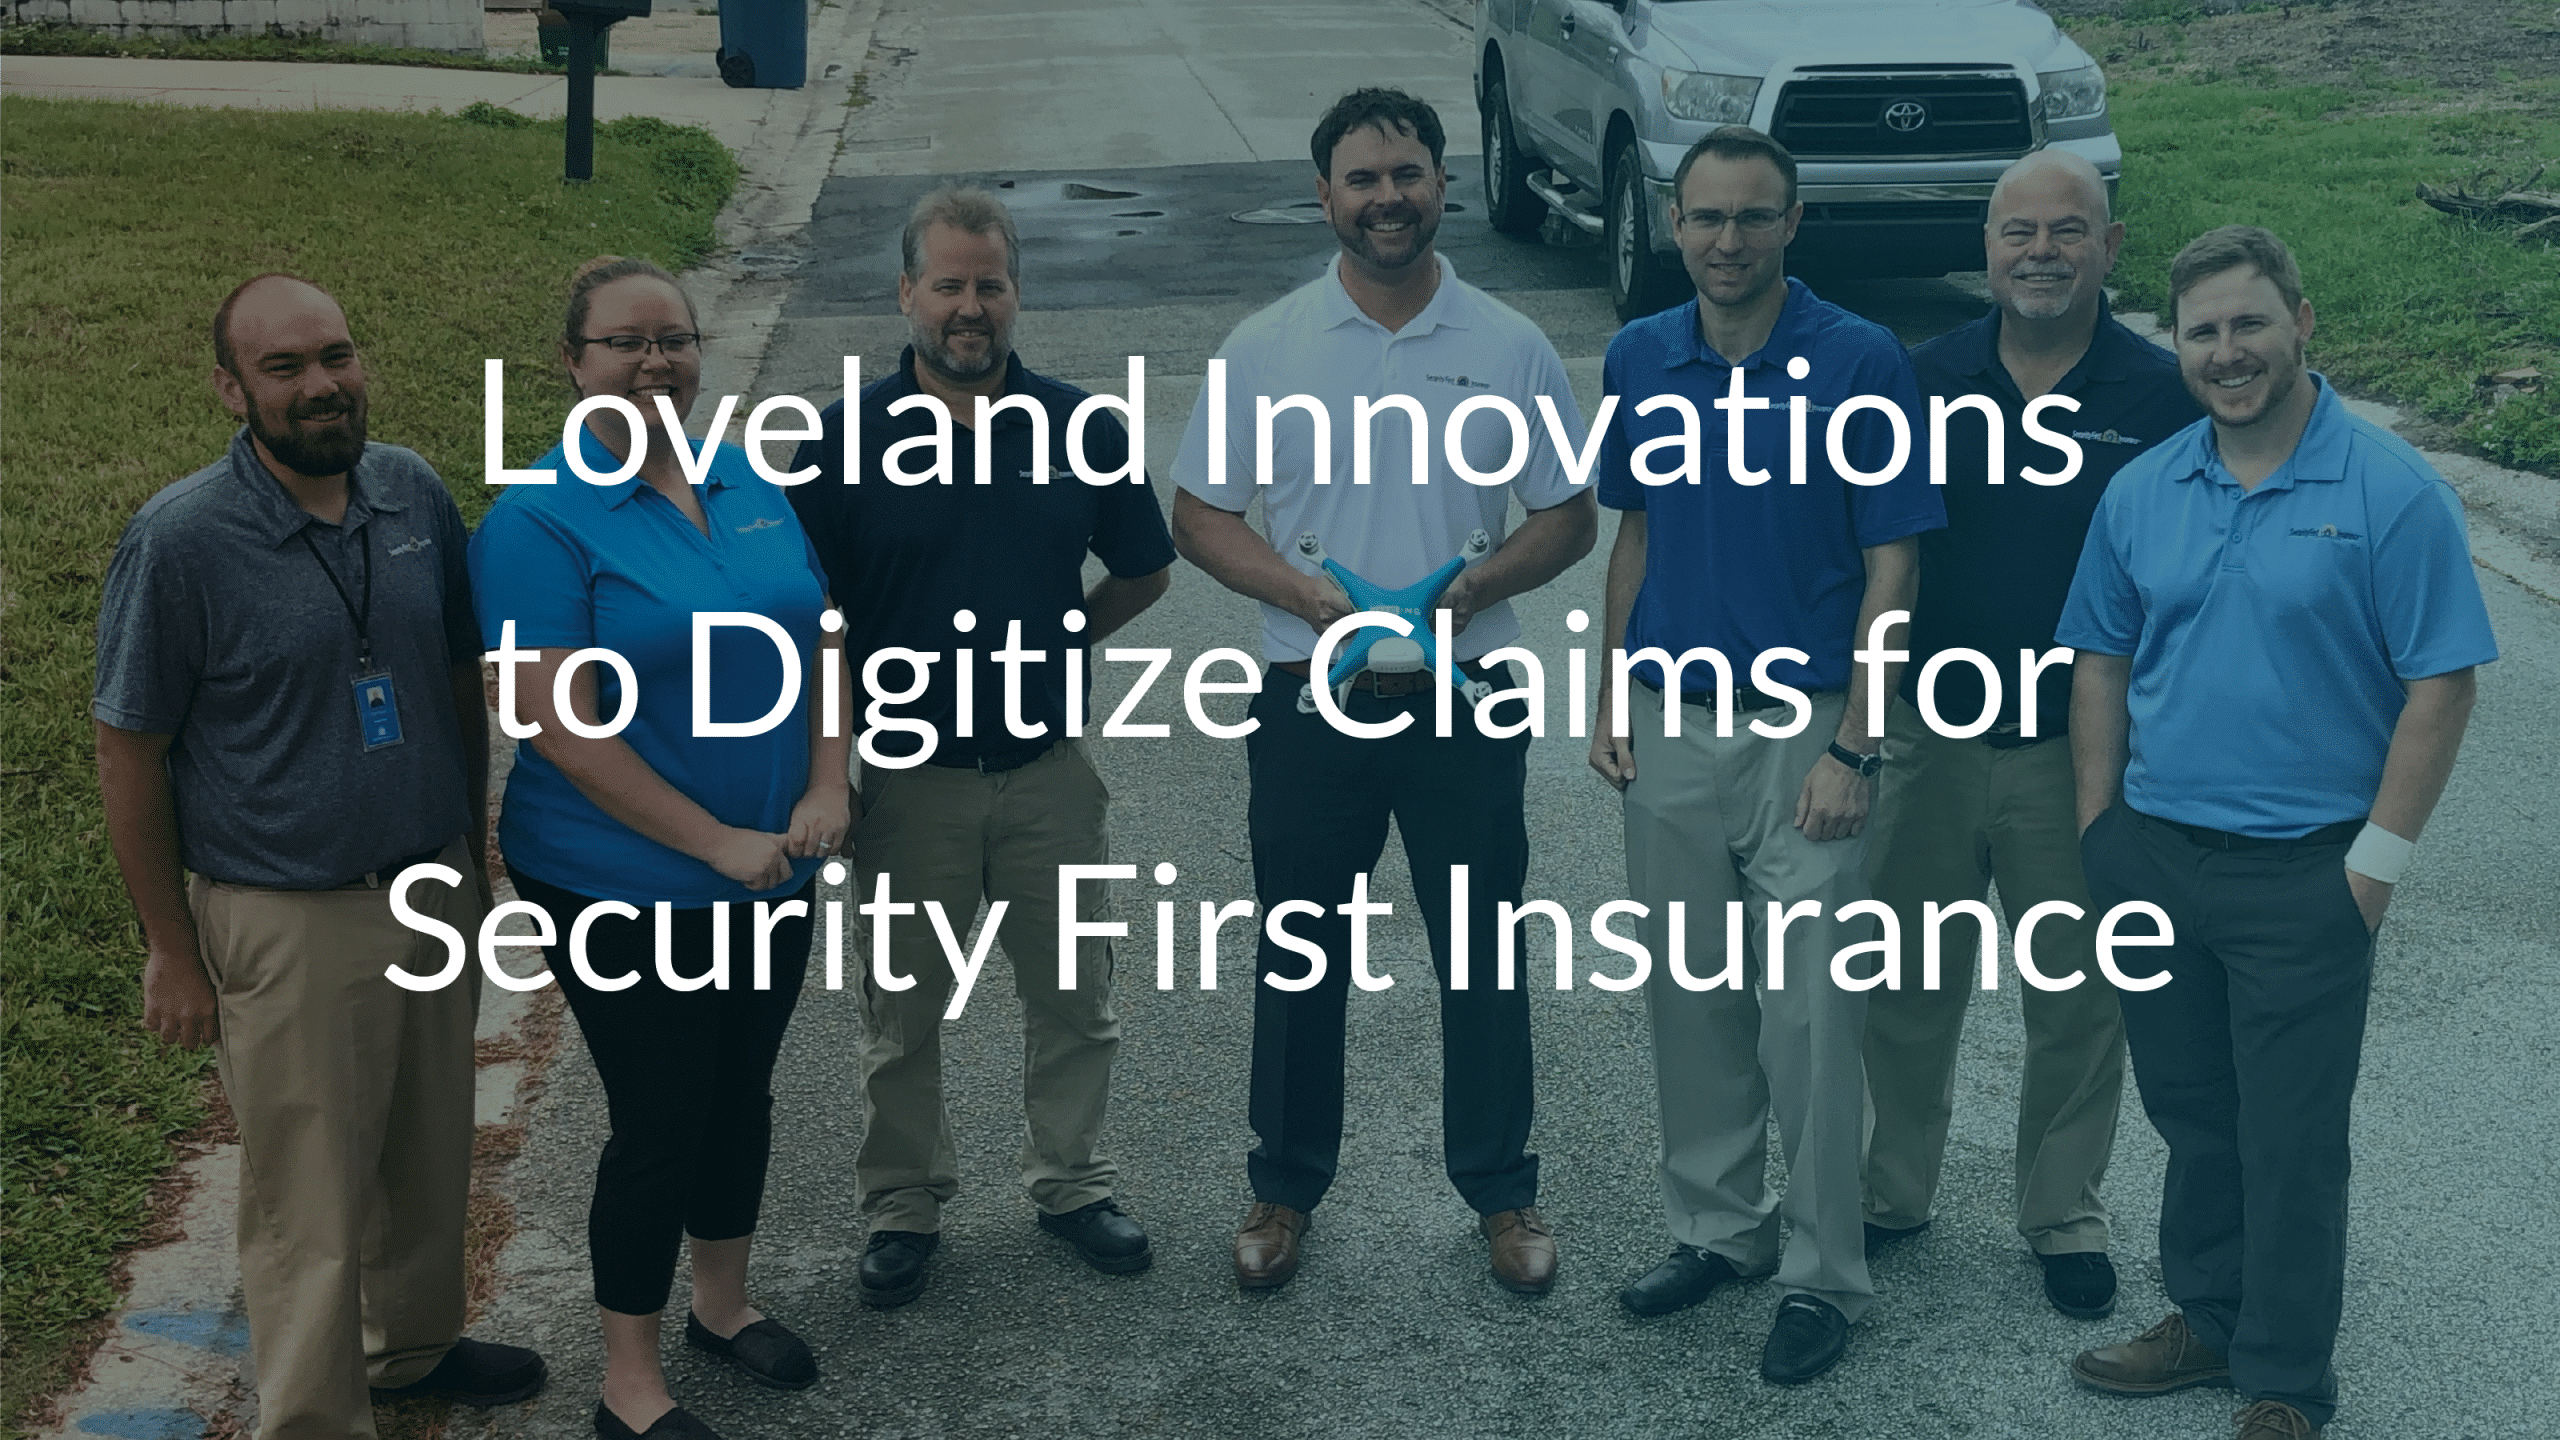 Security First to Digitize Claims